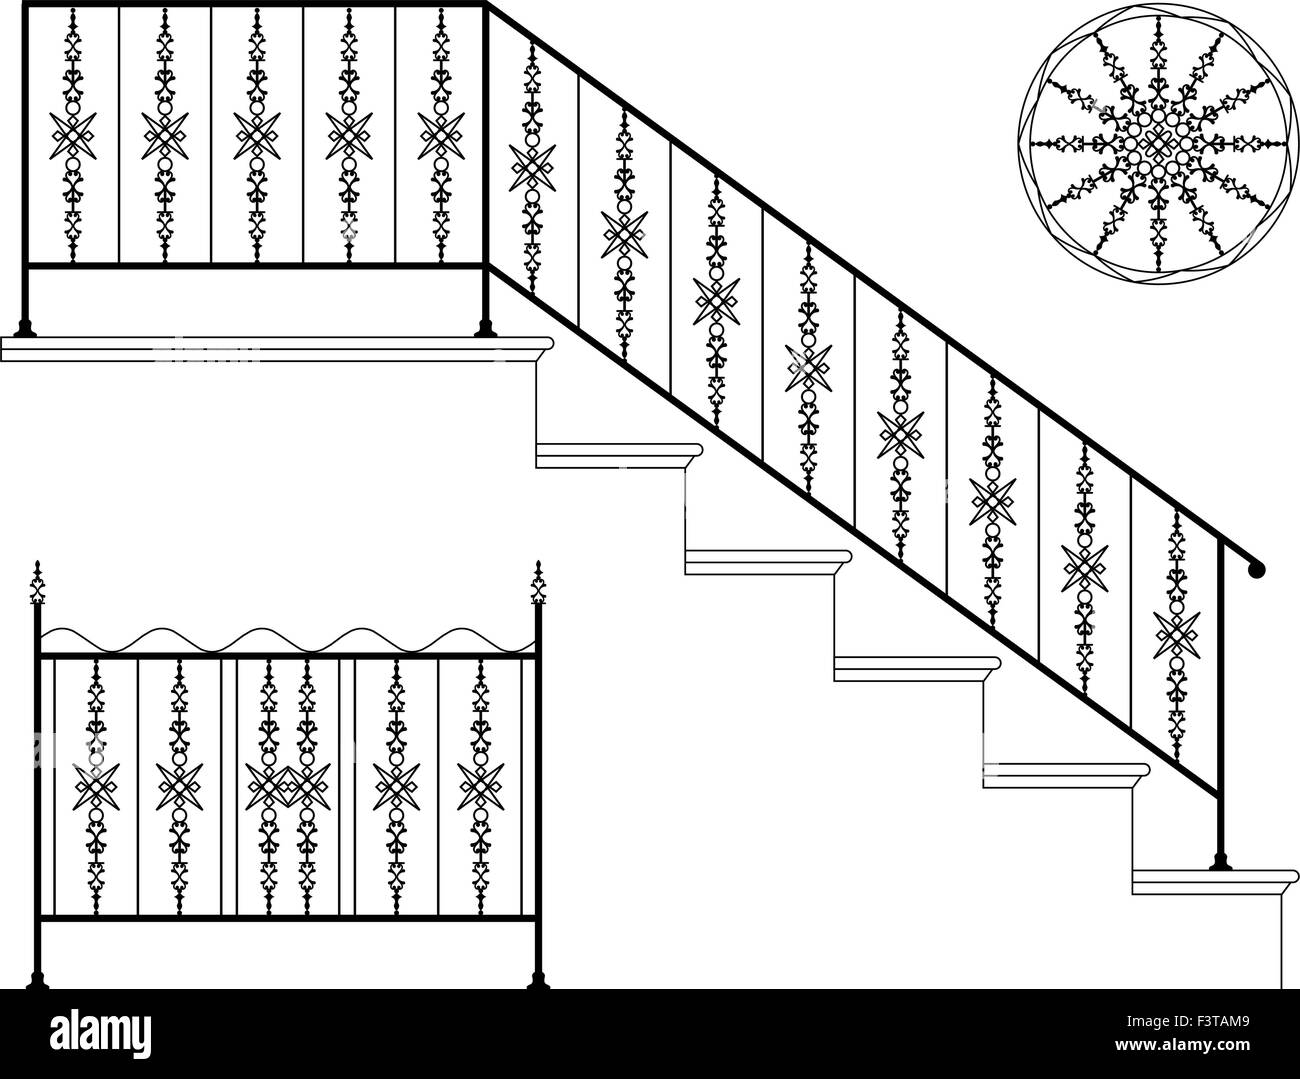 Wrought Iron Staircase Designs Wrought Iron Stair Railing Design Vector Art Stock Vector